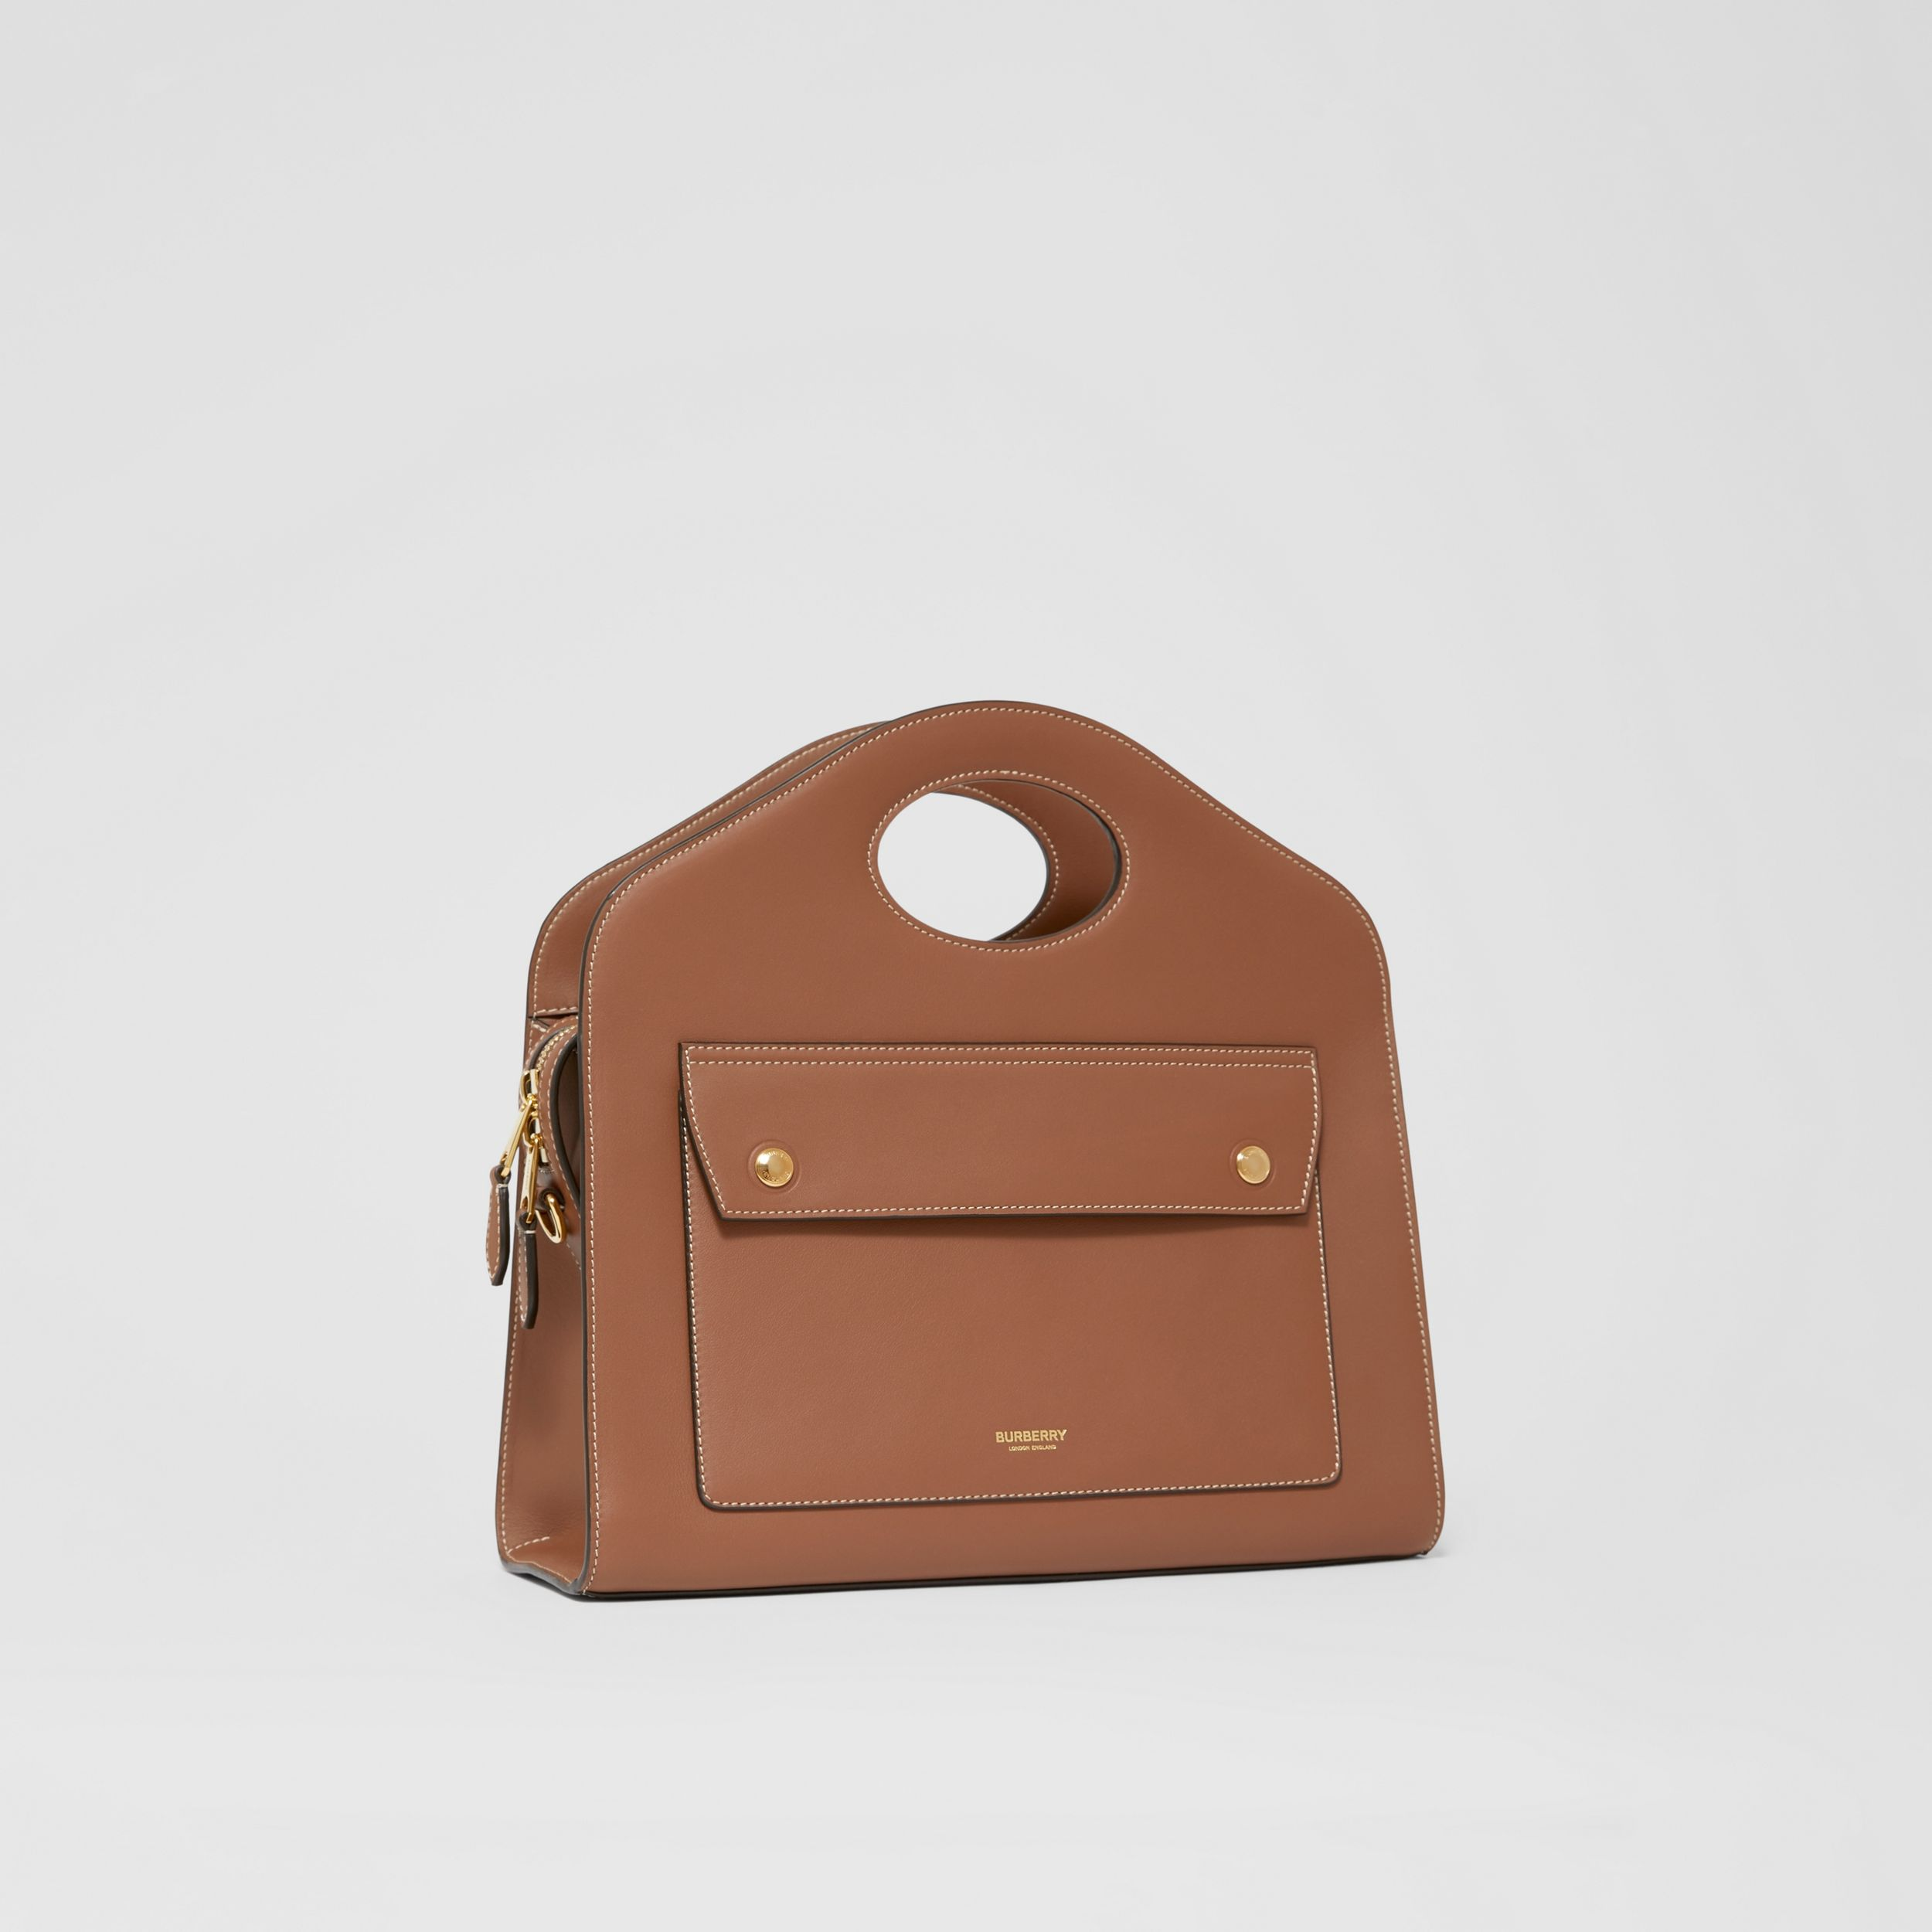 Small Topstitched Leather Pocket Tote in Malt Brown - Women | Burberry Singapore - 4